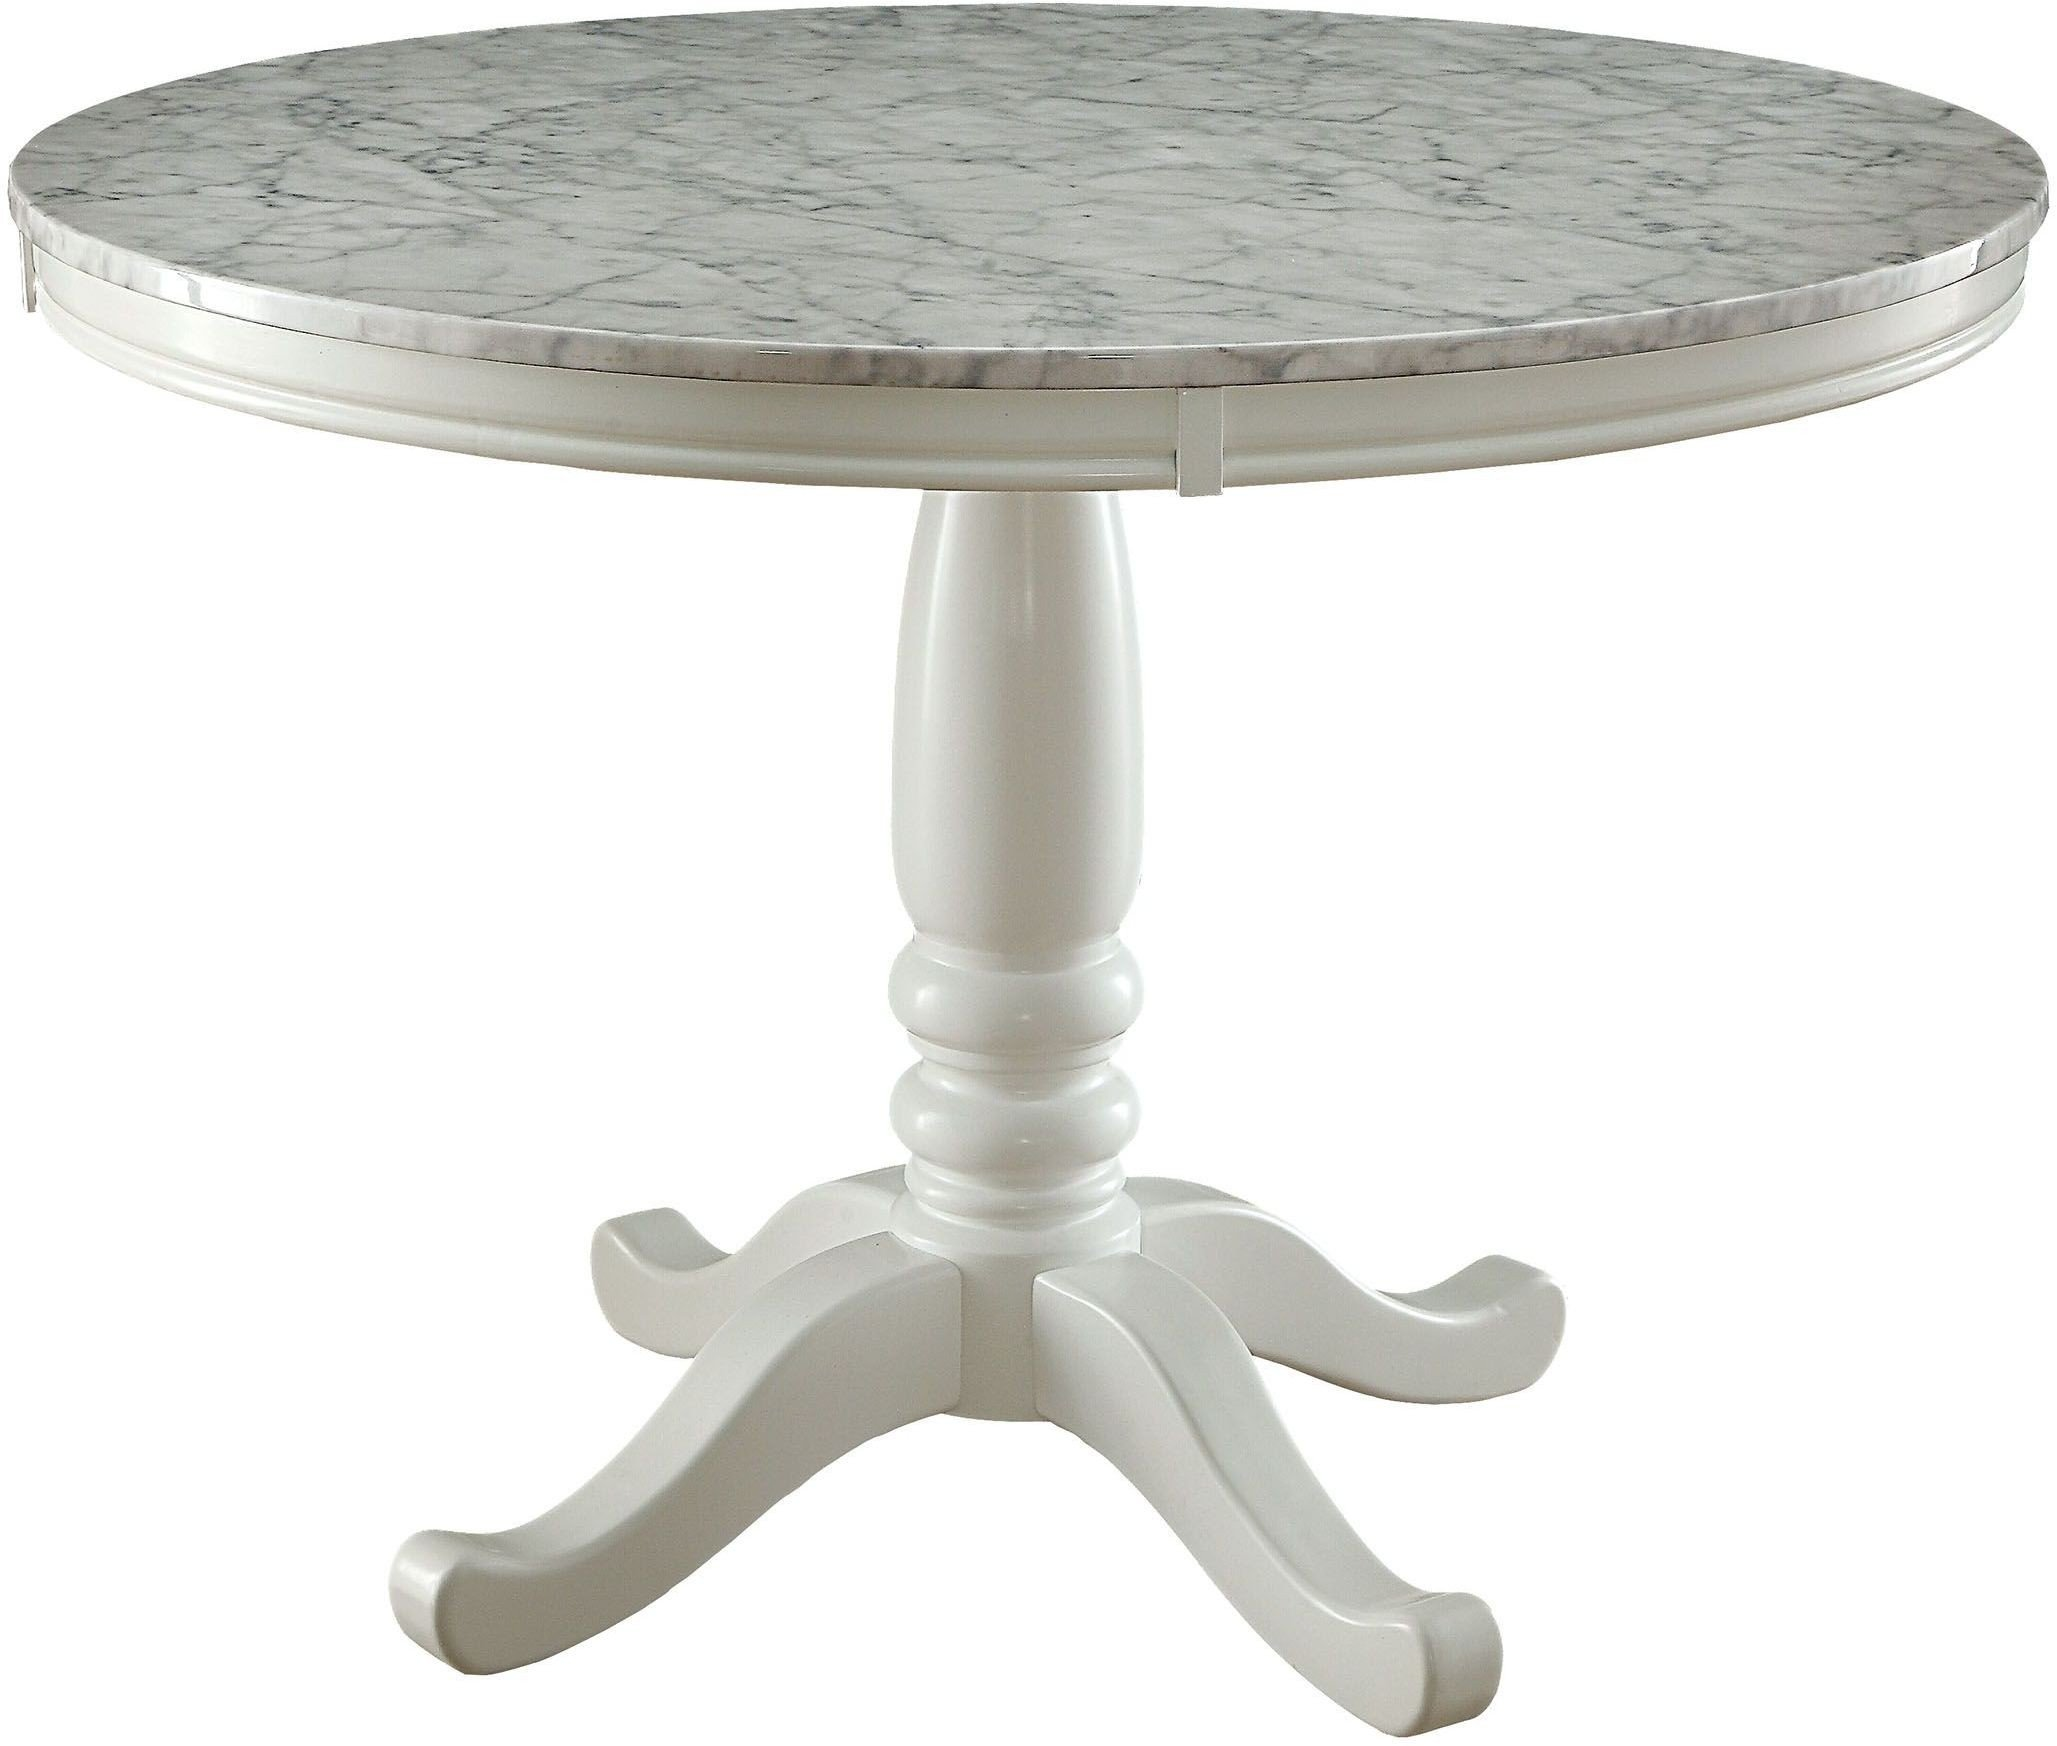 Penelope White Round Dining Table